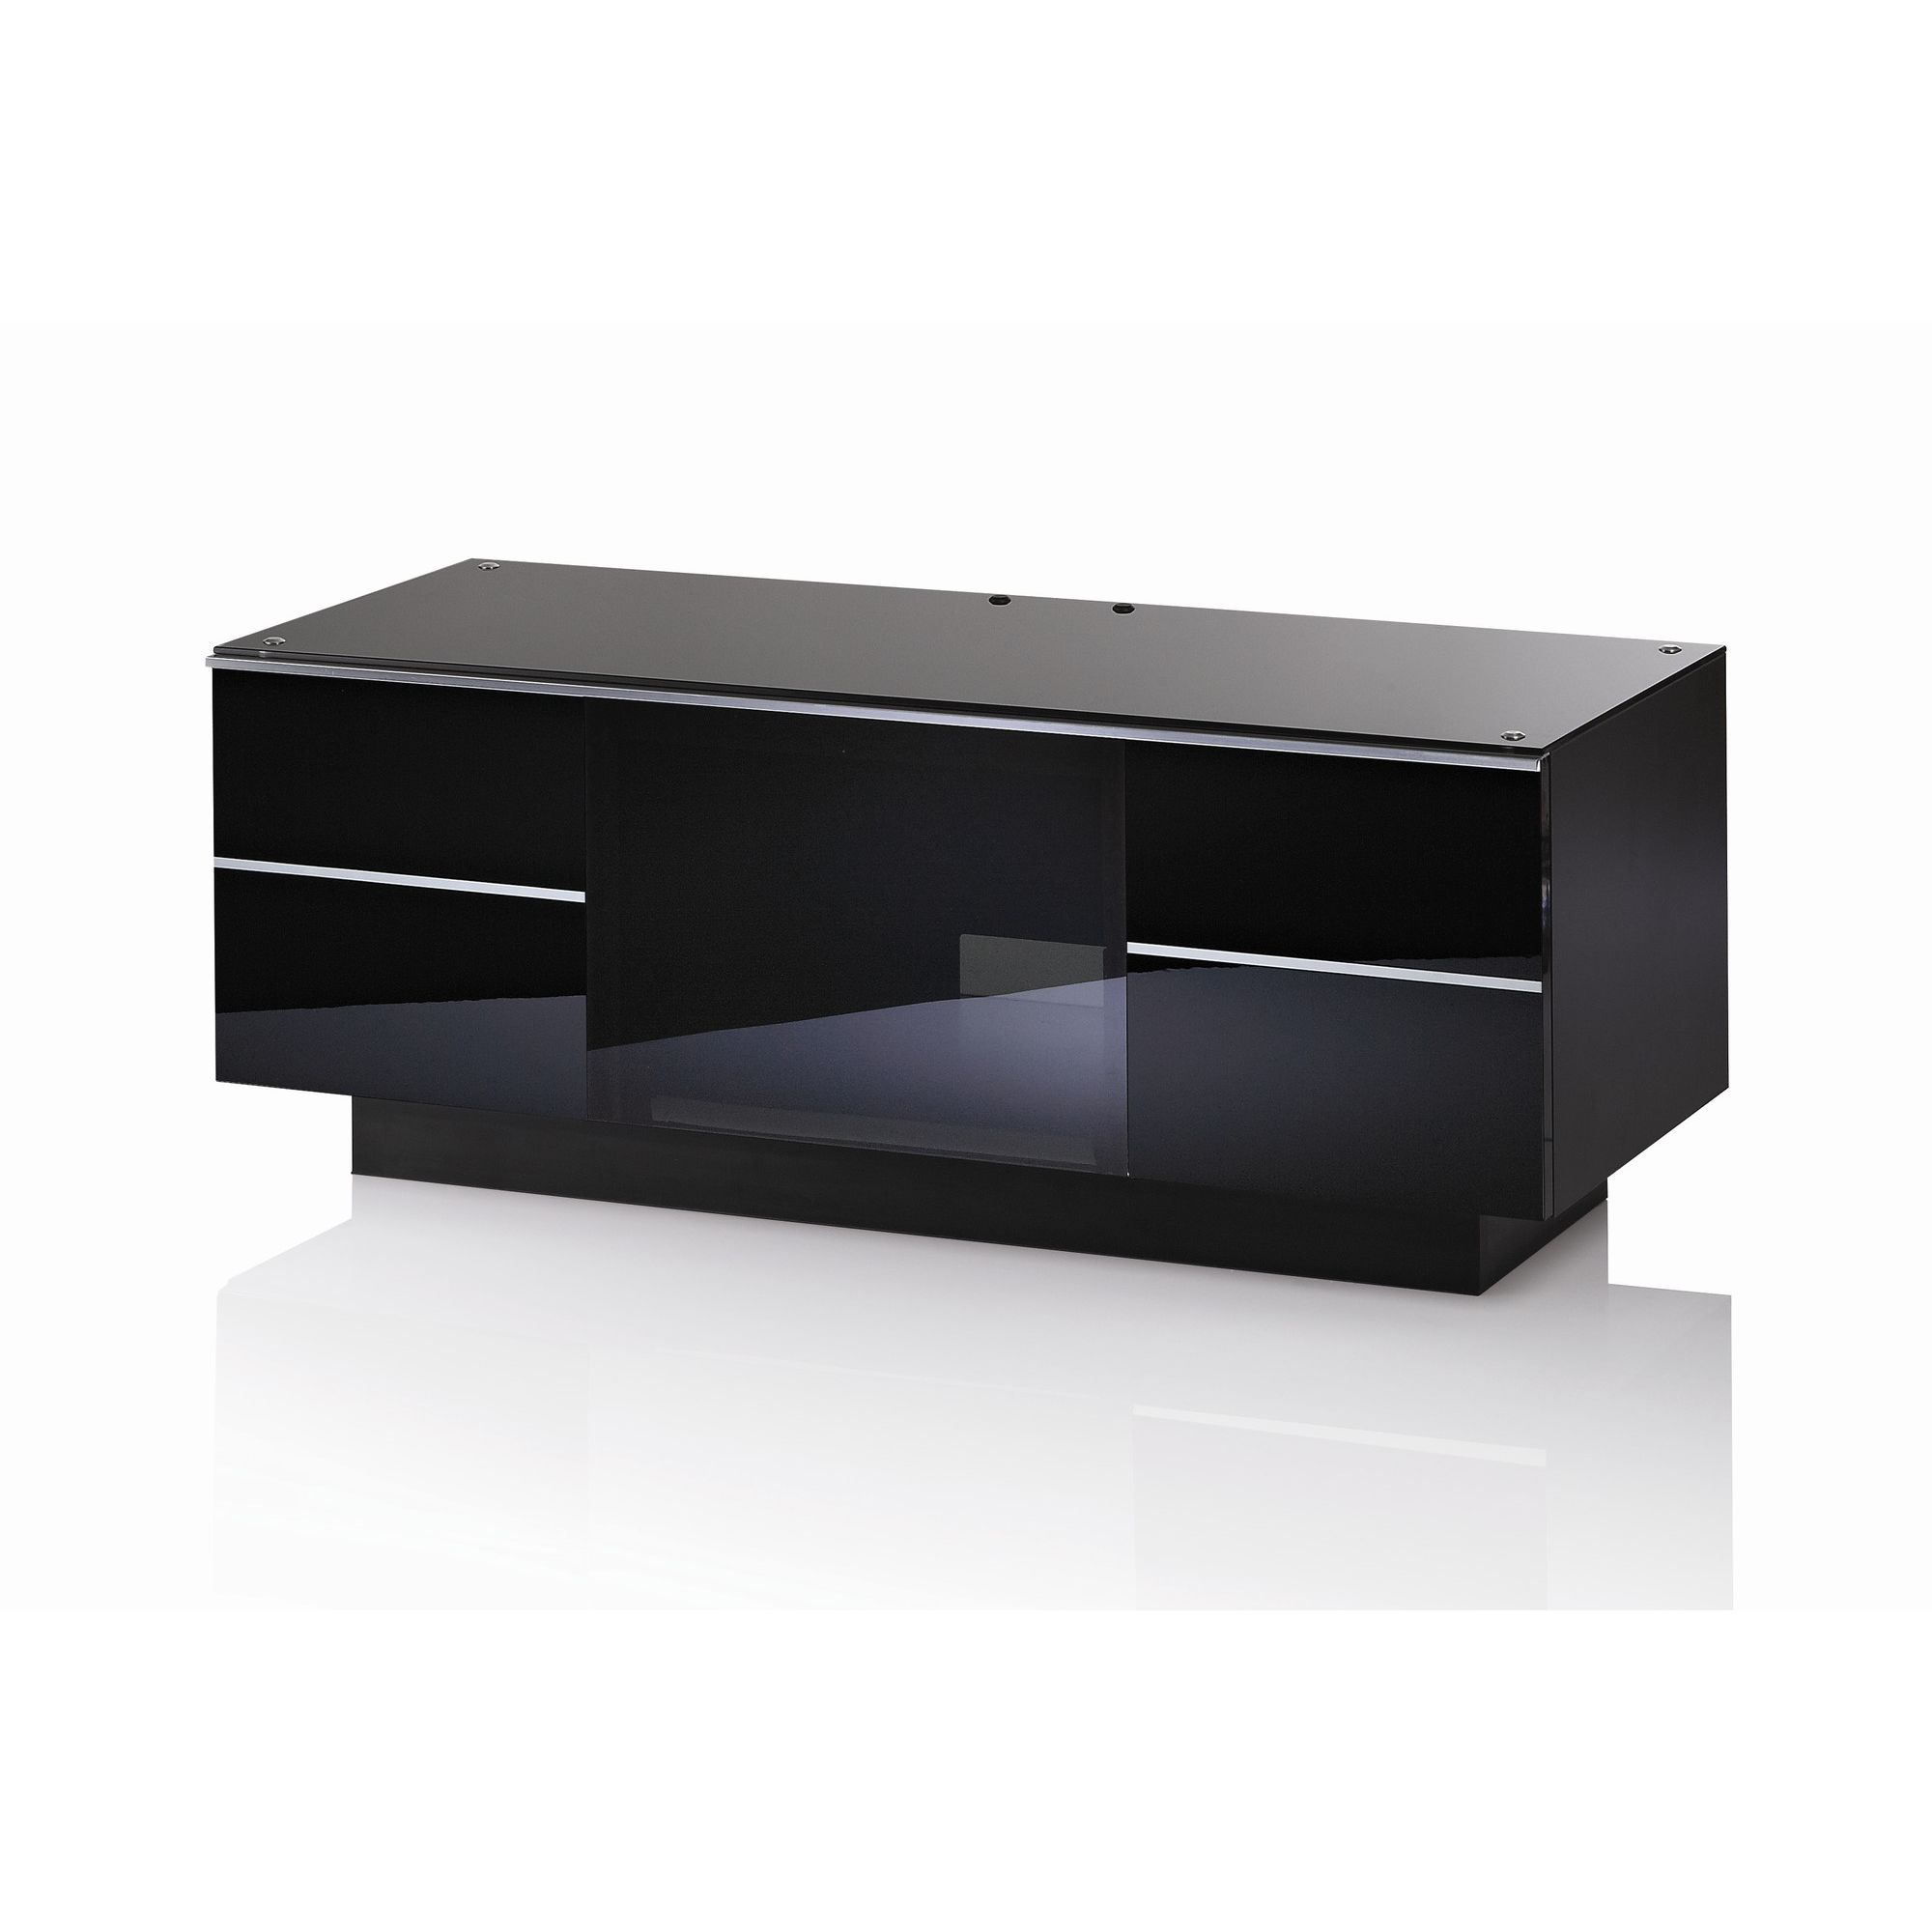 UK-CF G Series GS TV Stand - 110cm - Black at Tesco Direct